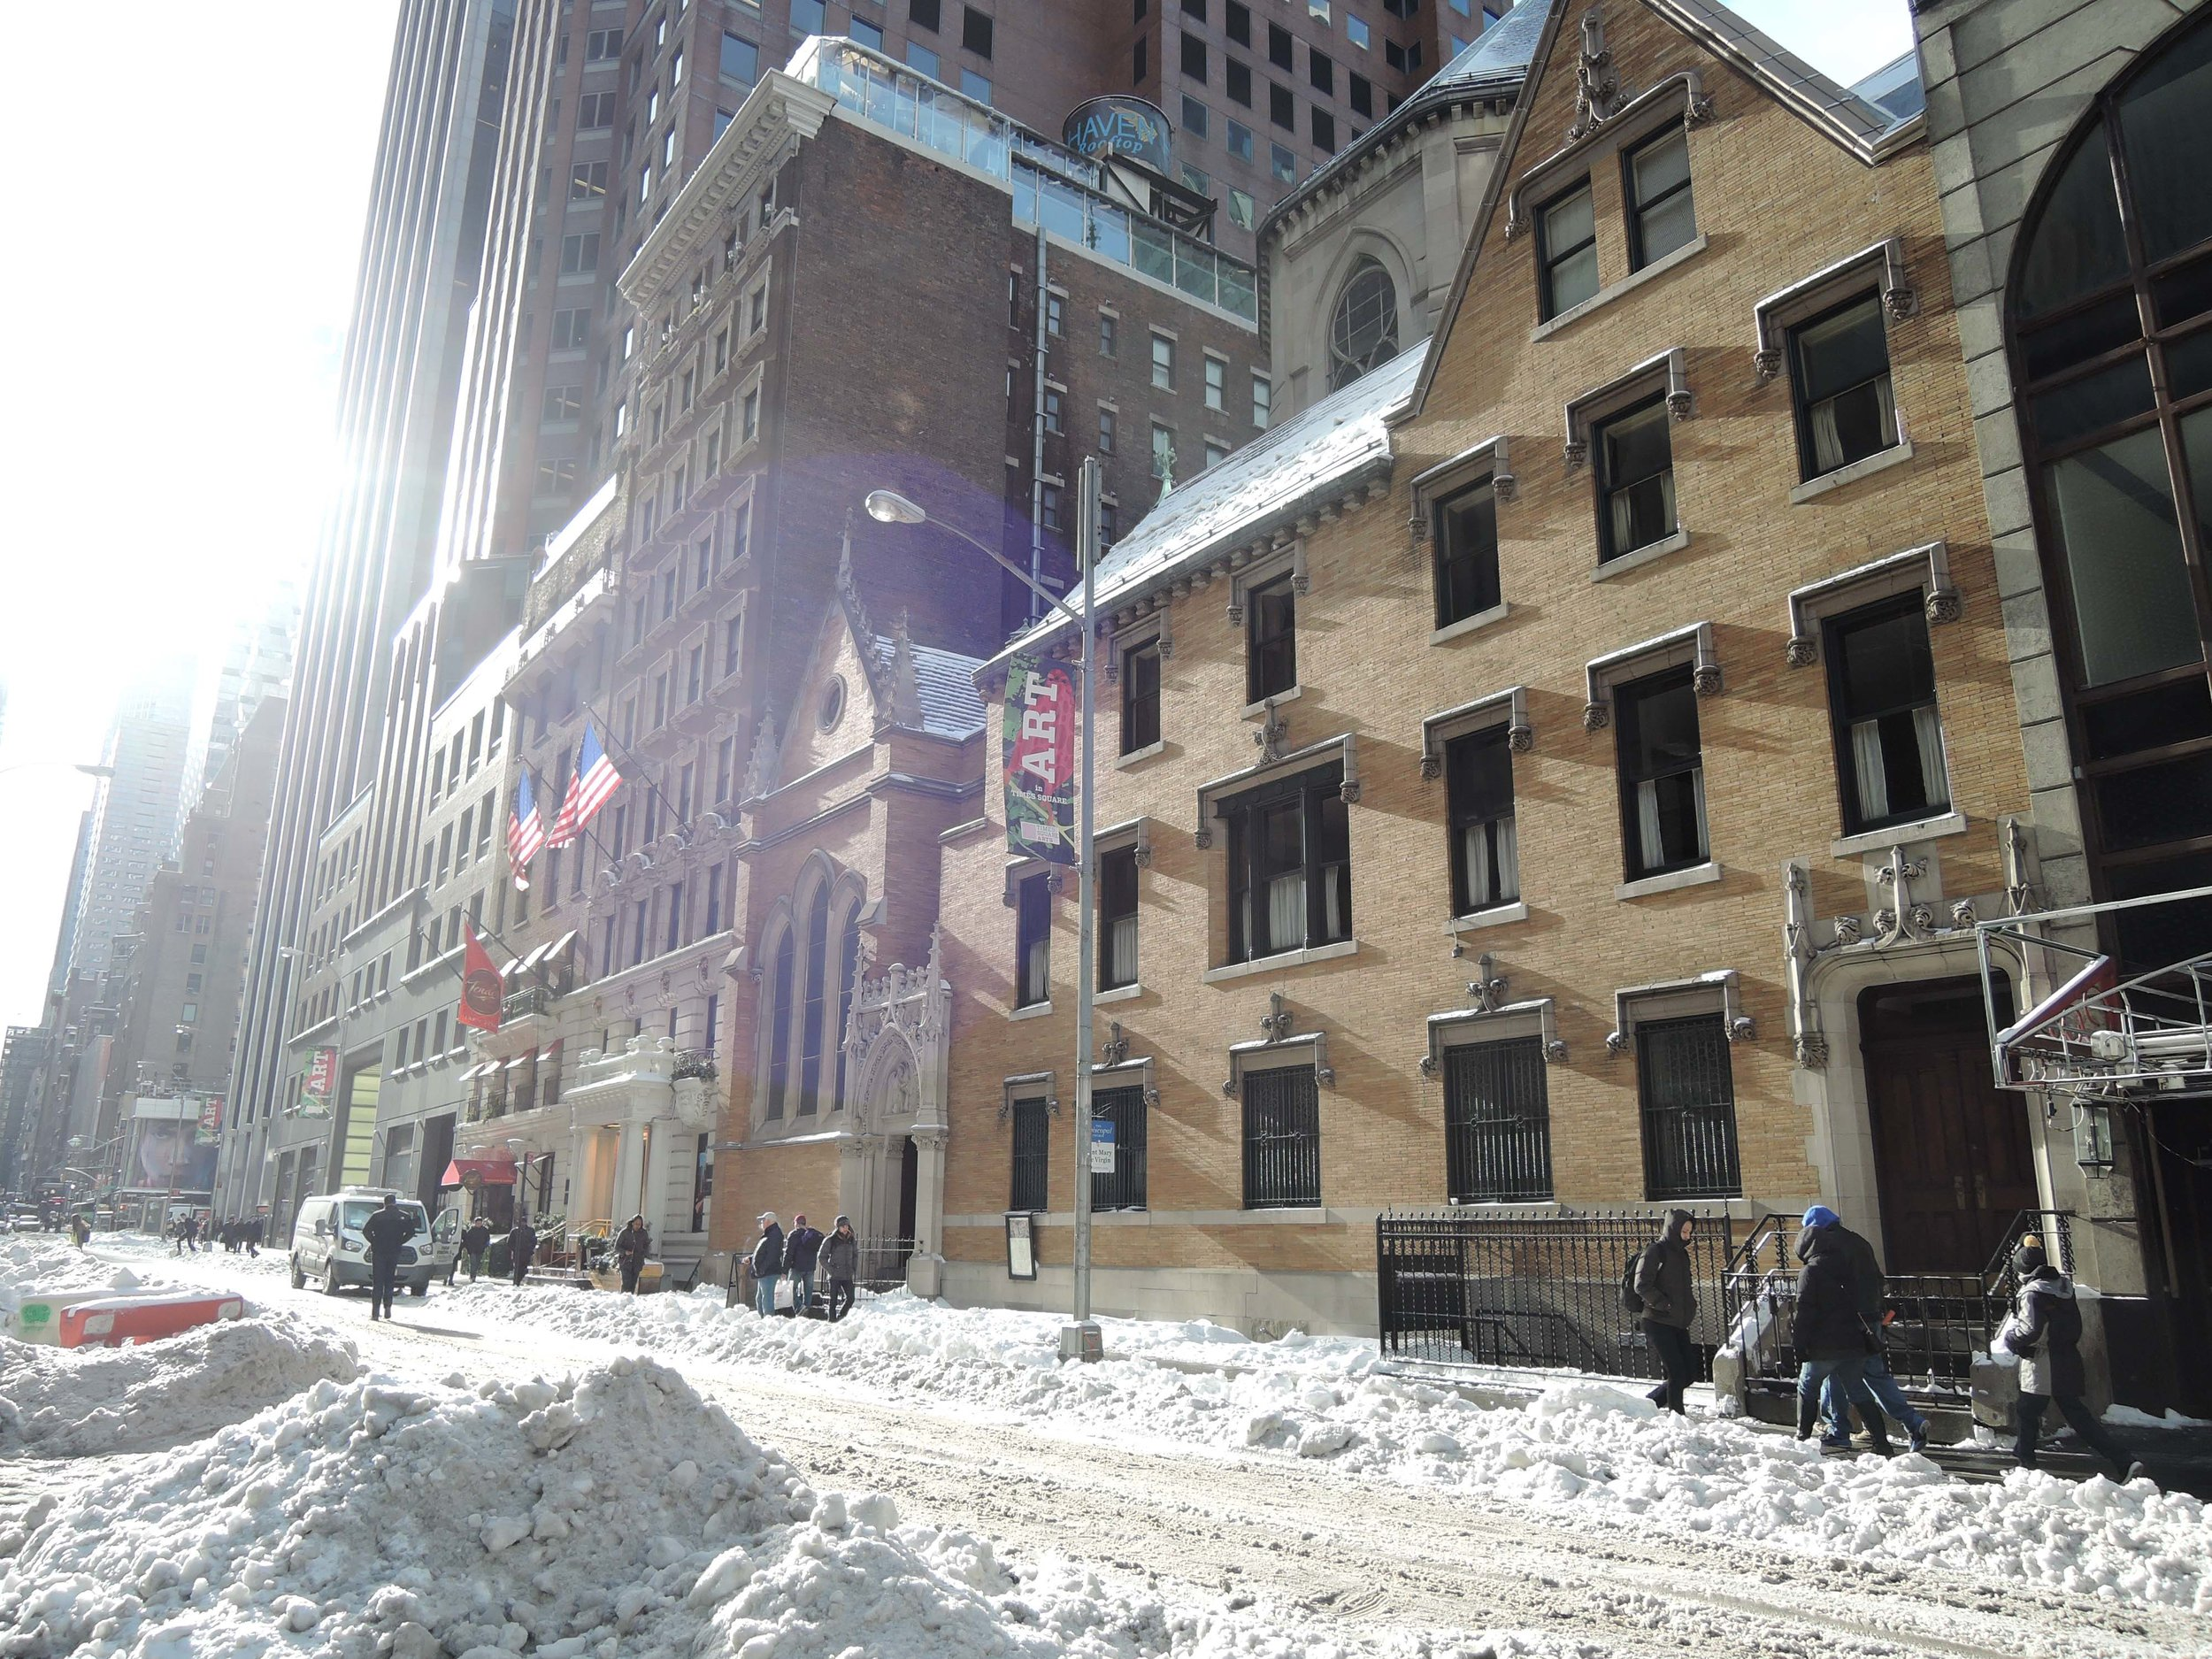 A snowy Forty-seventh Street after the storm